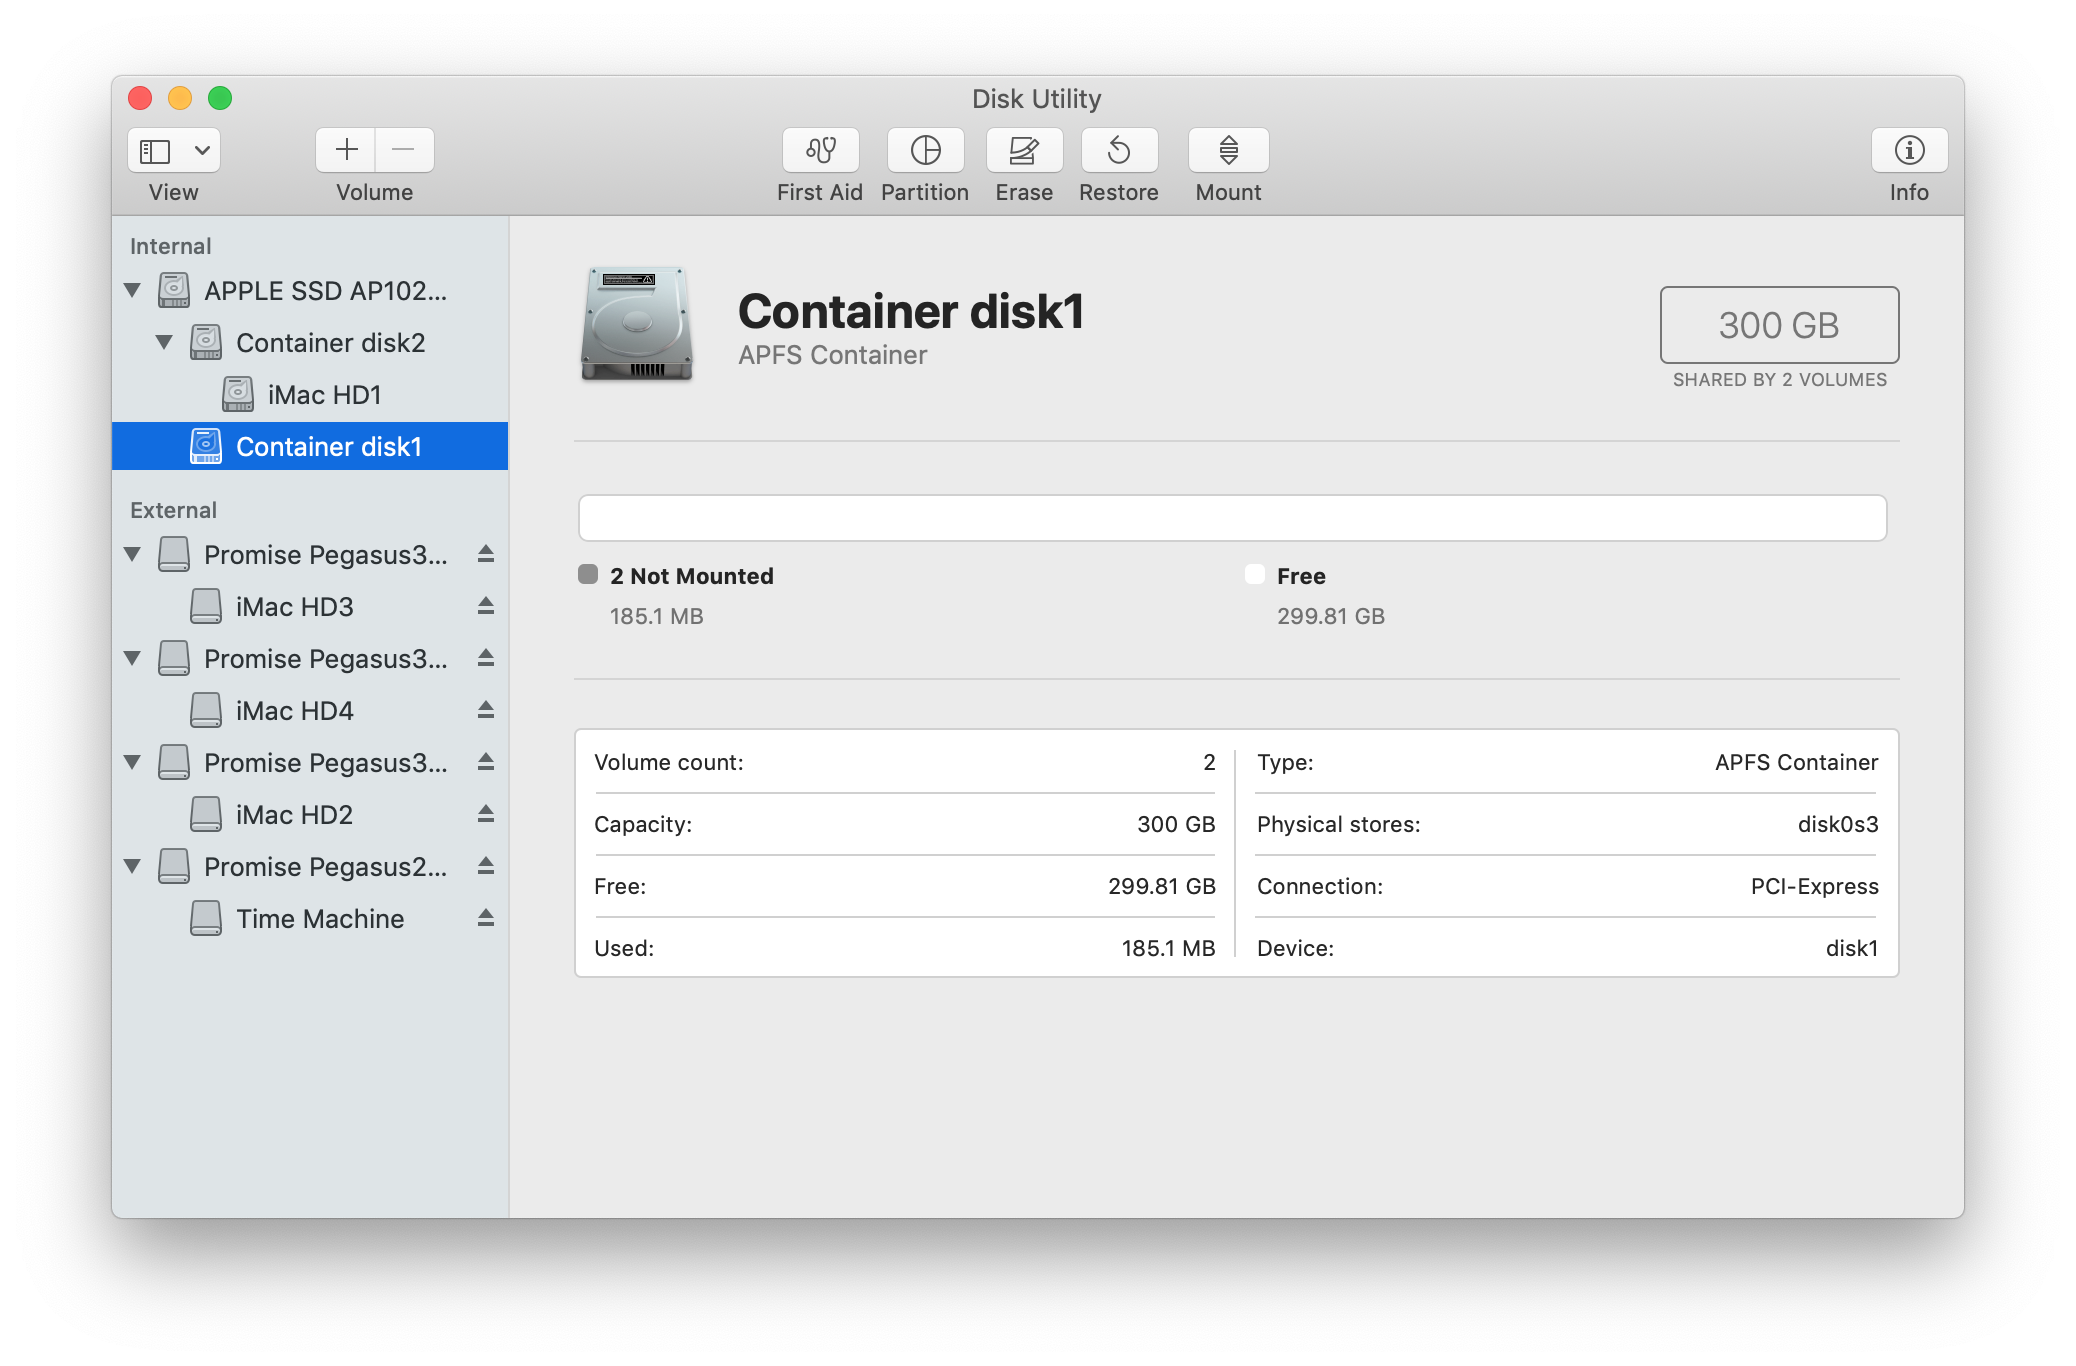 What is Container disk1 and how can I del… - Apple Community